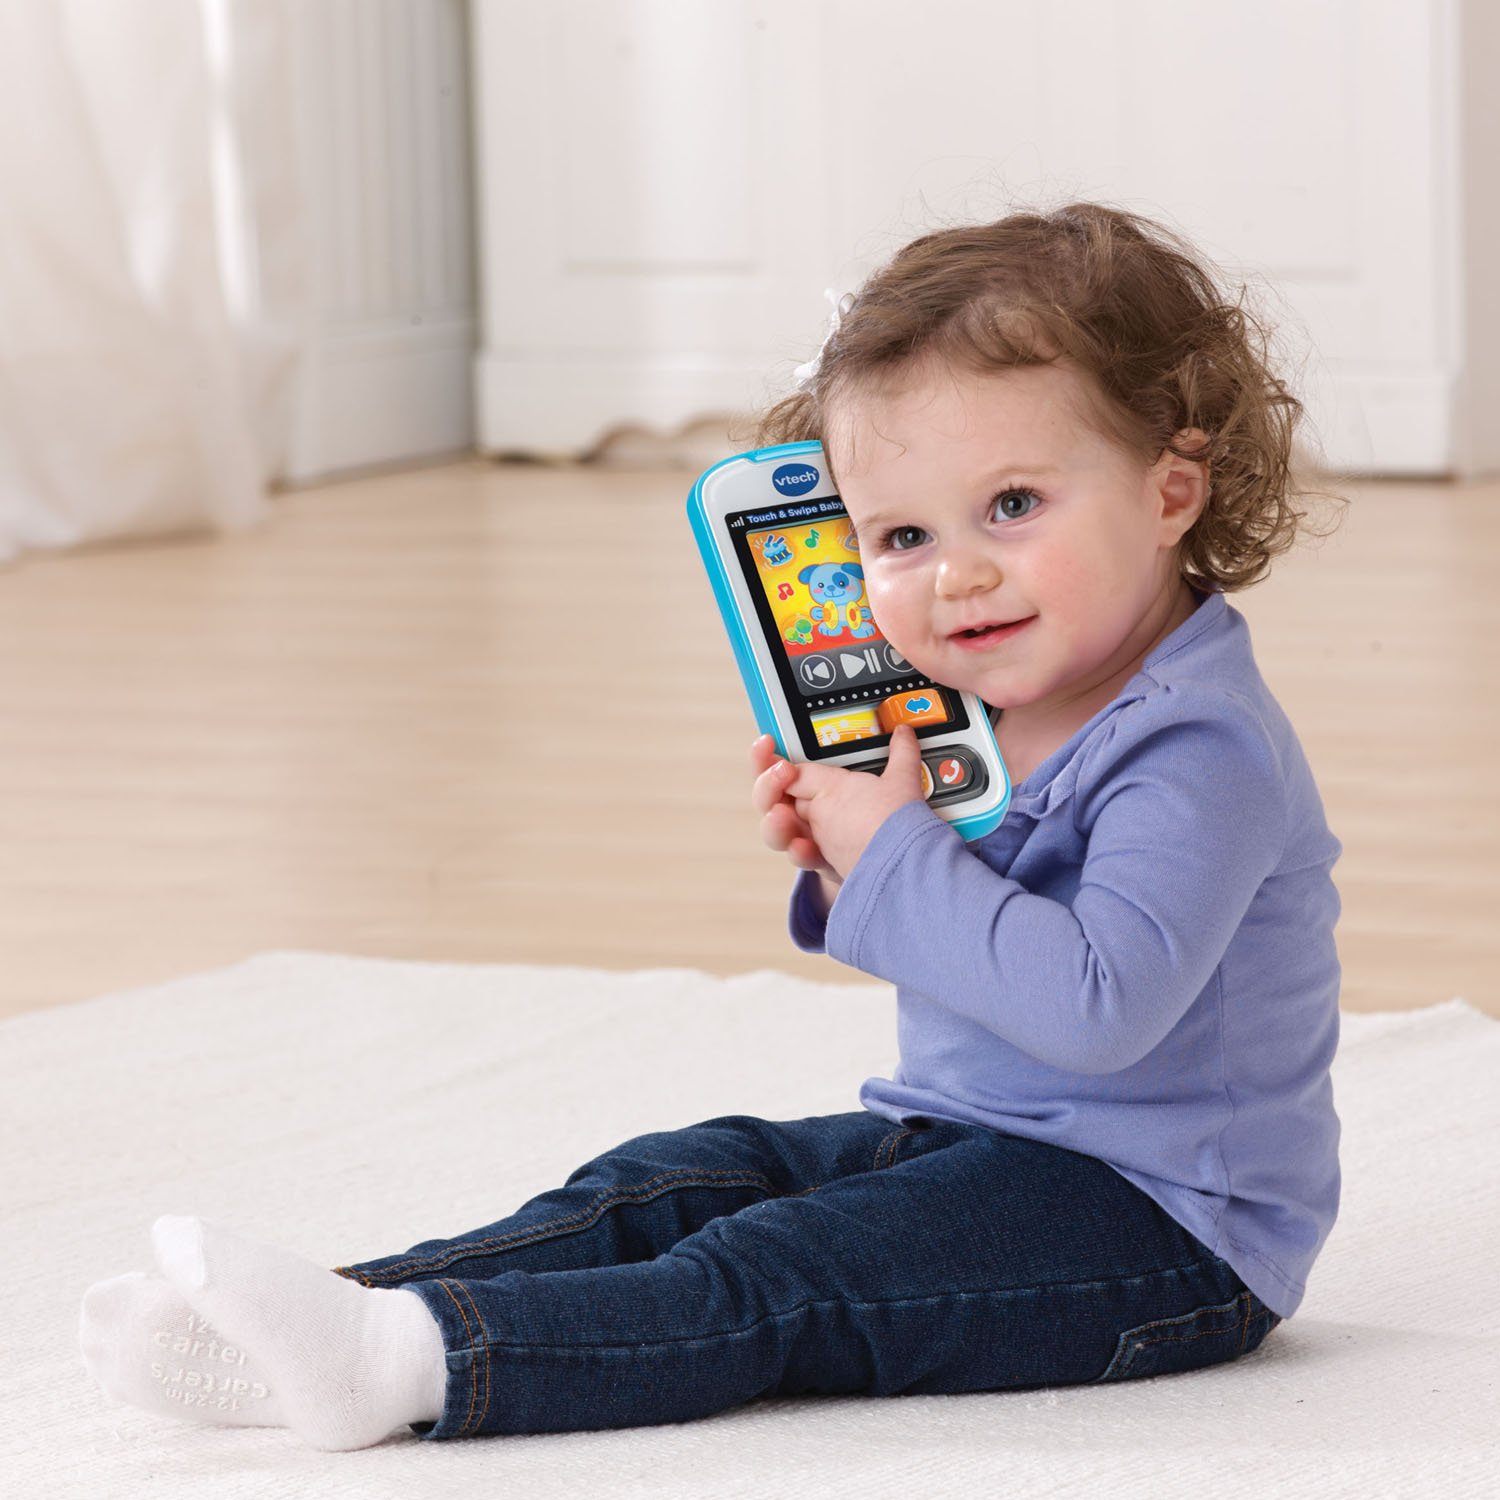 VTech Touch and Swipe Baby Phone, Blue by VTech (Image #5)